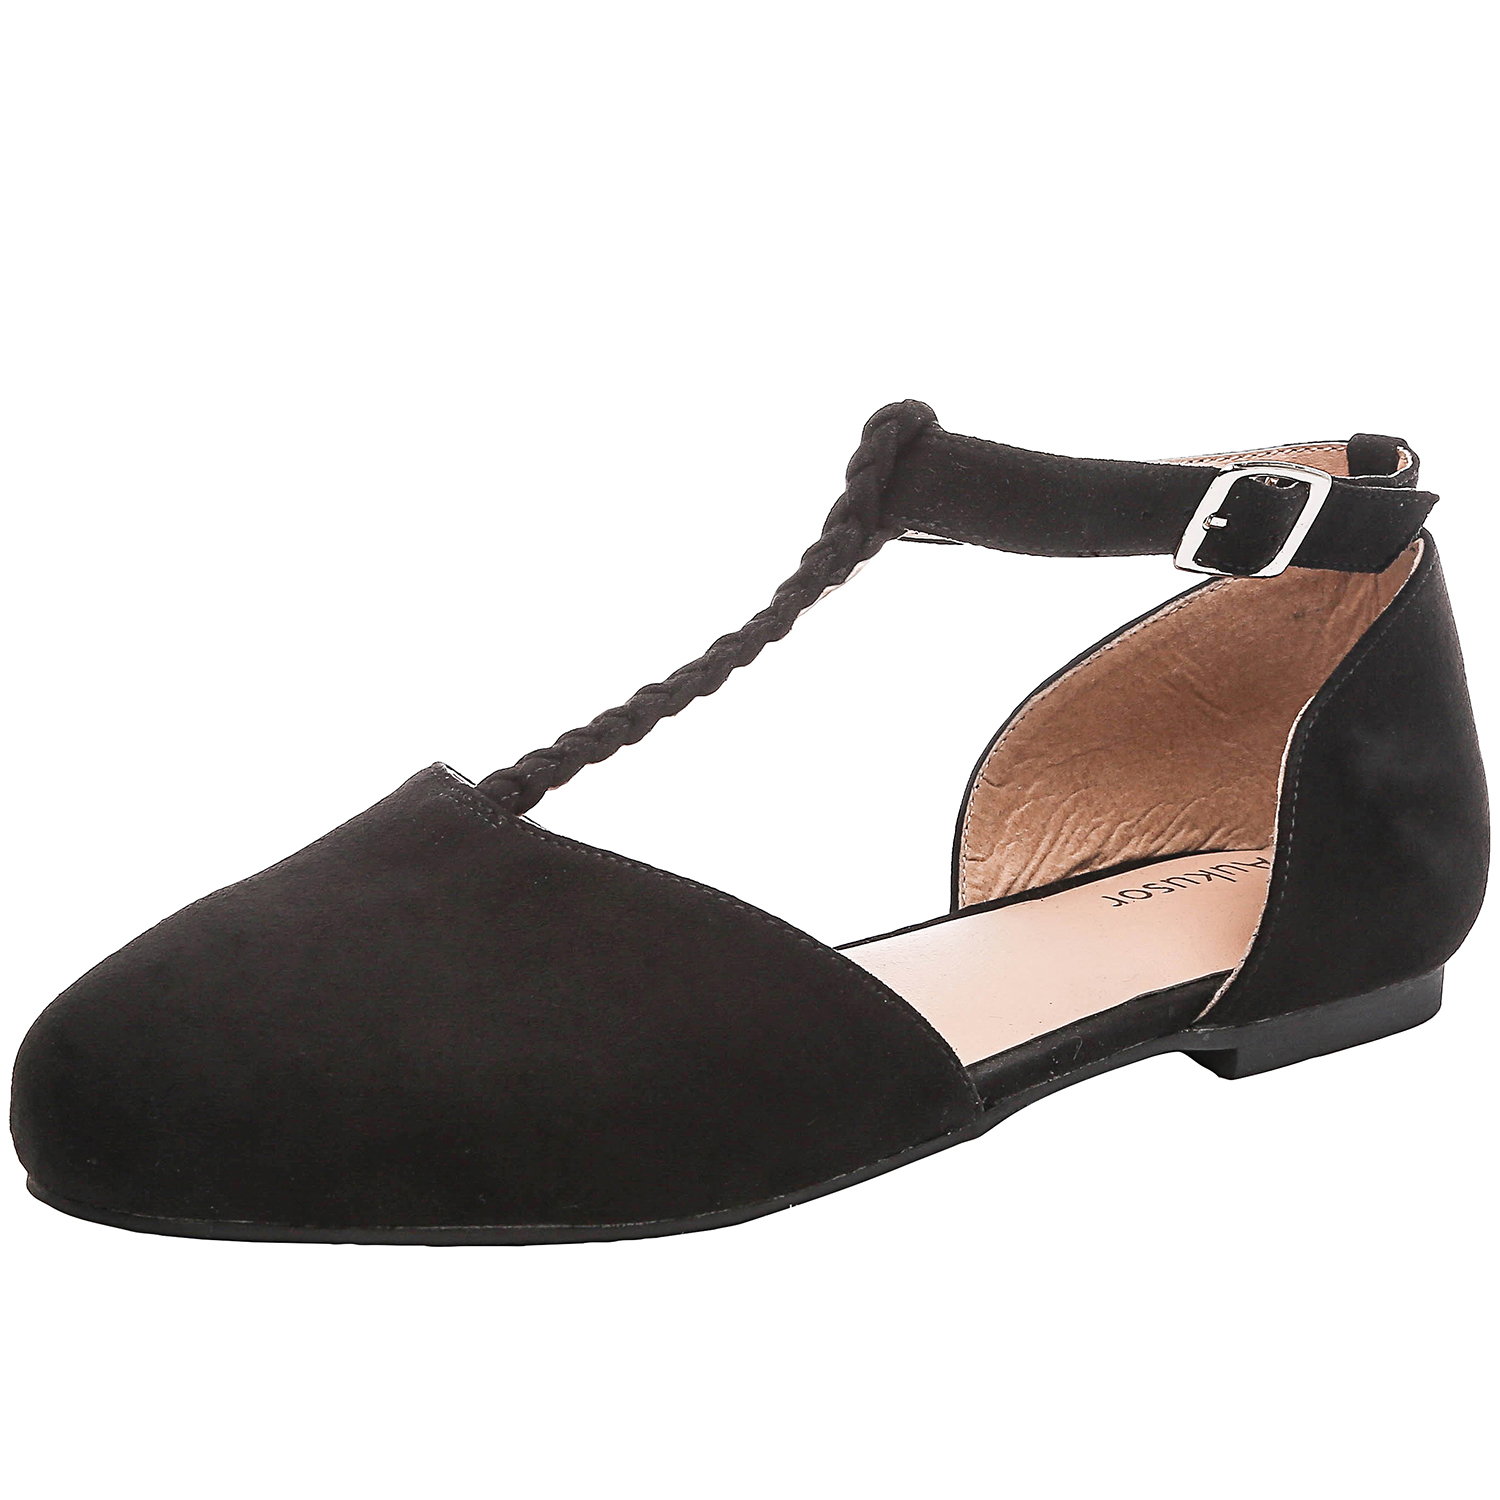 0ba3e295010 US  29 - Aukusor Women s Wide Ballet Flat Shoes - Sandals T-Strap Comfort  Light Pointed Toe Slip on Casual Summer Shoes - www.luoika-us.com